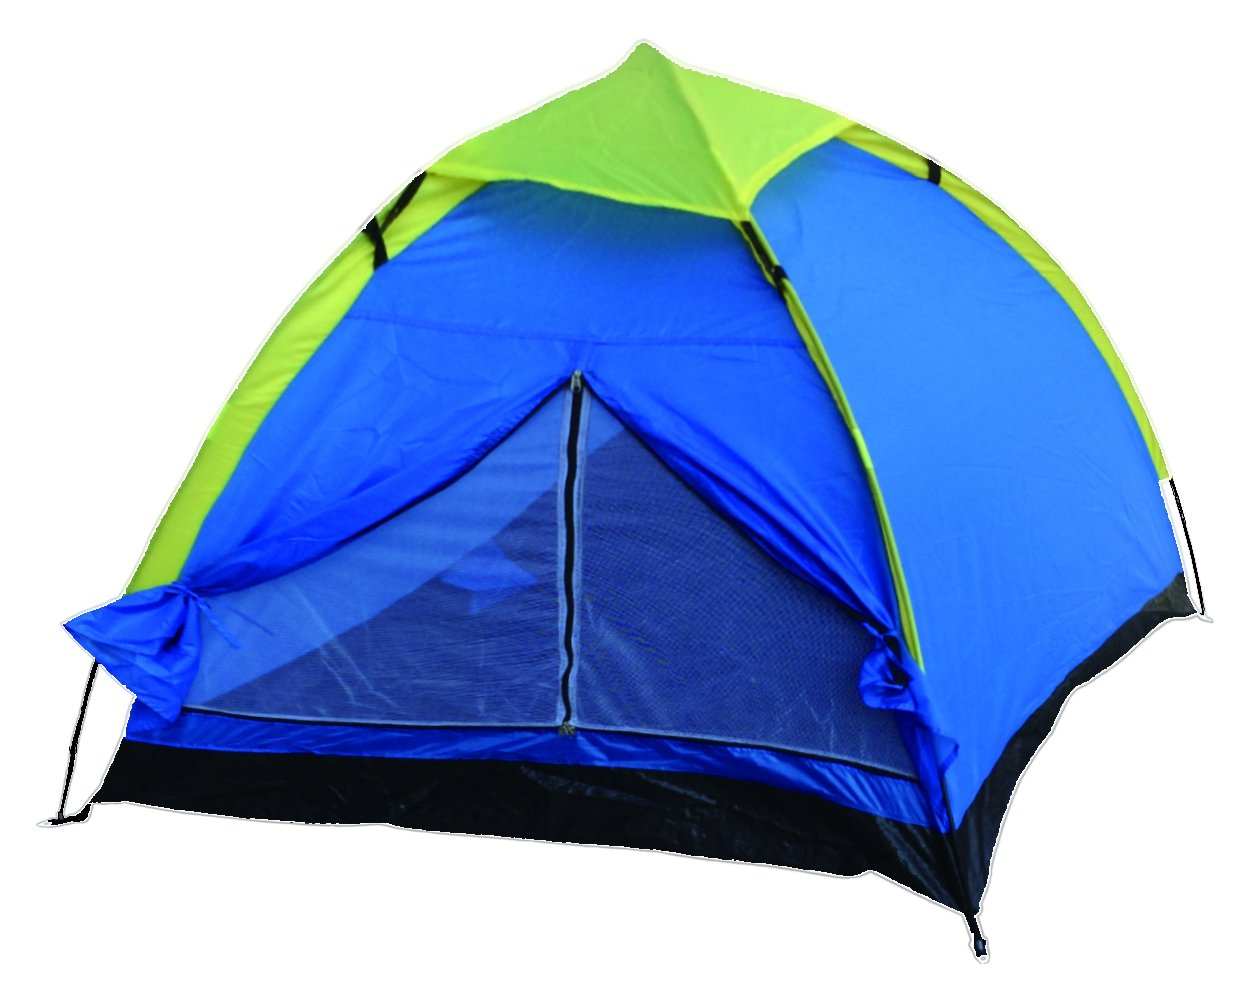 Amazon.com  Poco Divo 2-person Family C&ing Dome Backpacking Tent  Sports u0026 Outdoors  sc 1 st  Amazon.com & Amazon.com : Poco Divo 2-person Family Camping Dome Backpacking ...